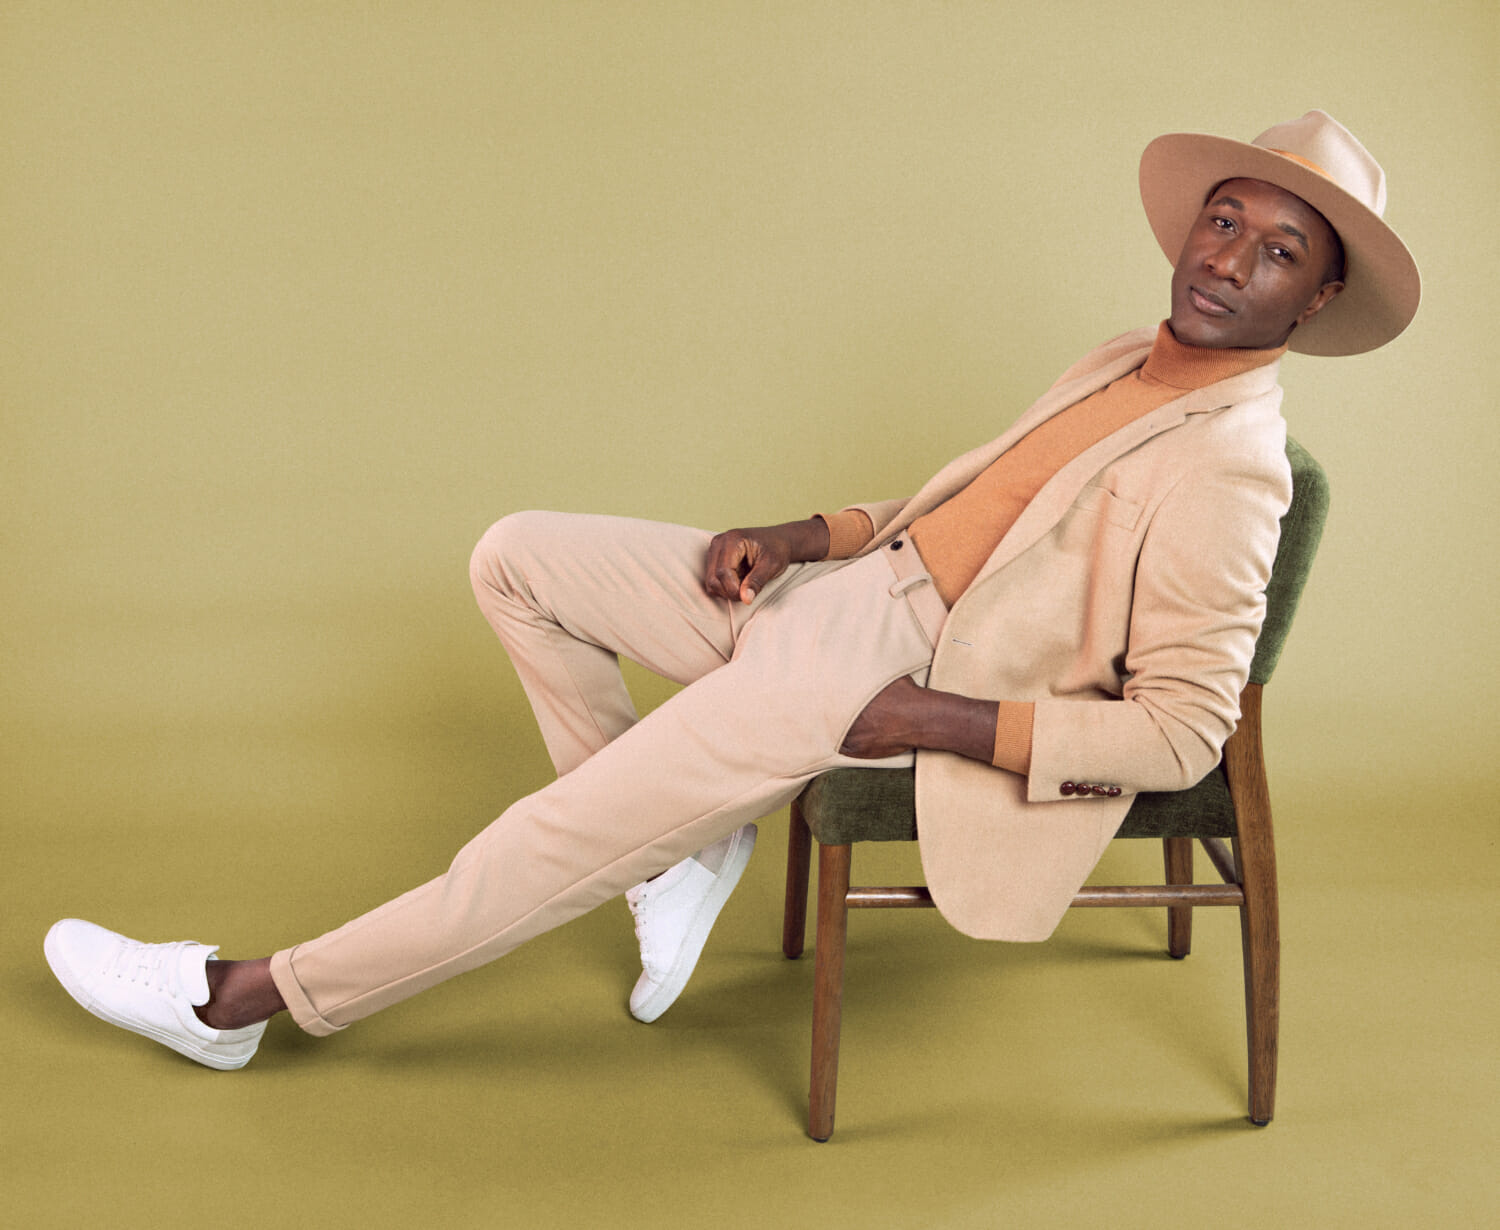 Aloe Blacc, Vic Mensa, and more contribute to socially-conscious compilation album, 'Defund the Sheriff'AloeBlacc CreditAmandaAustin